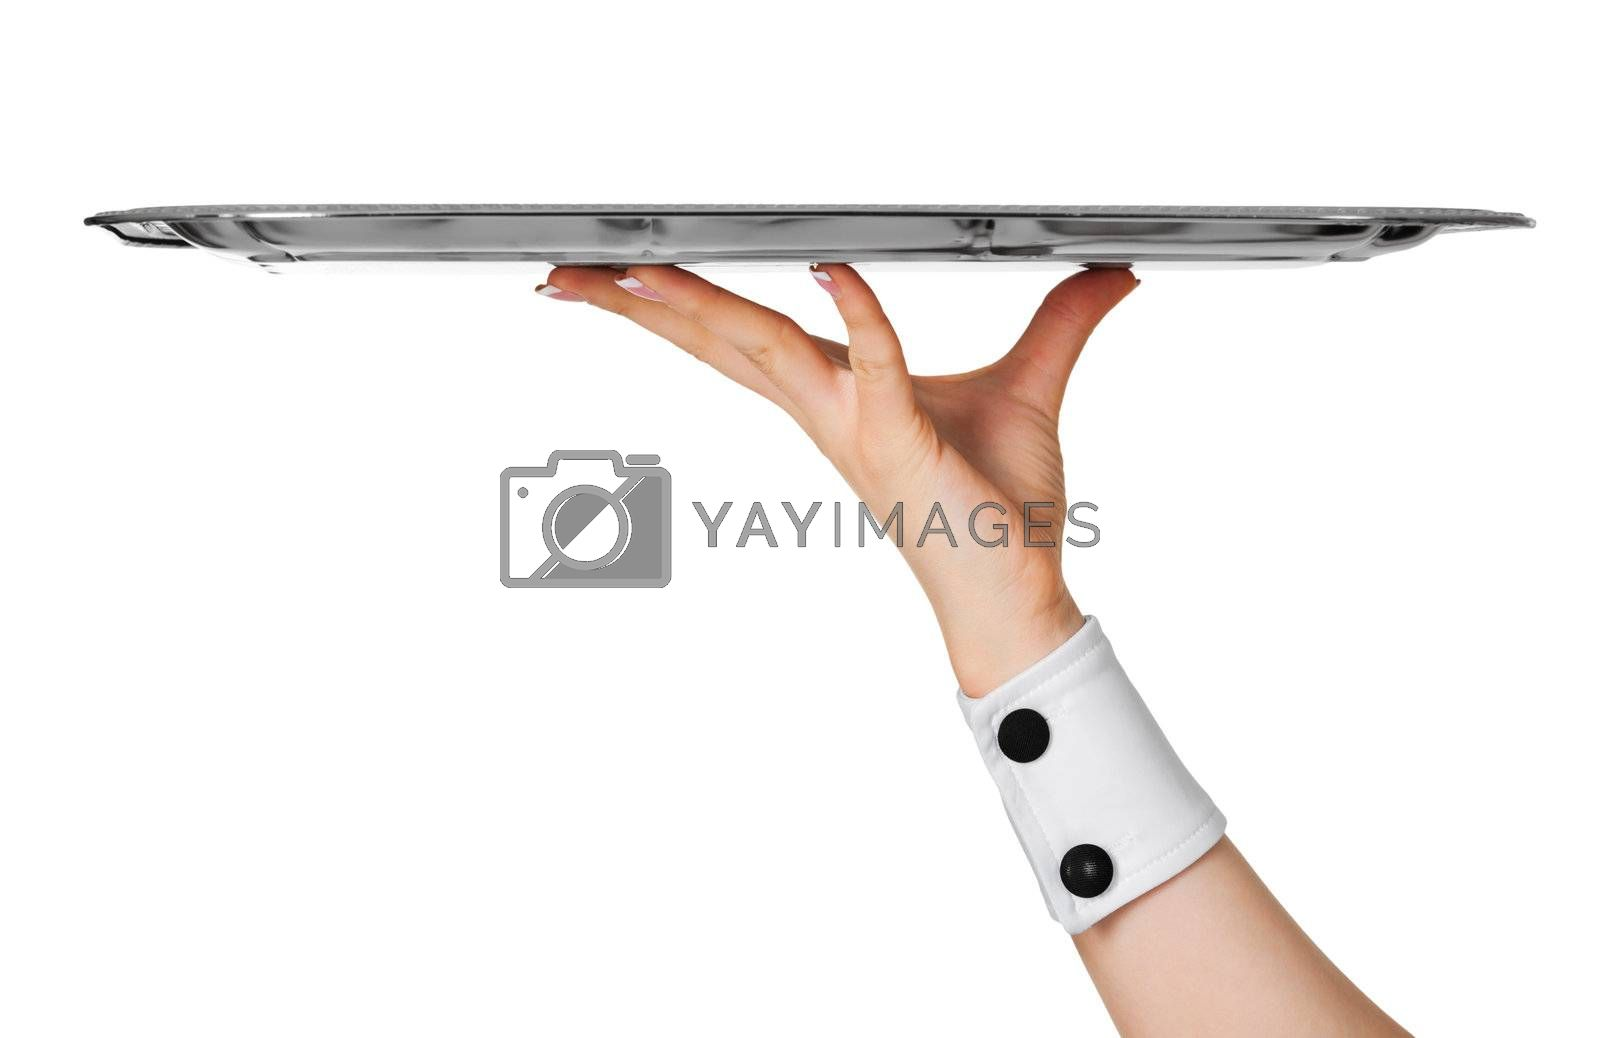 Waiter holding empty metal tray close up isolated on white background